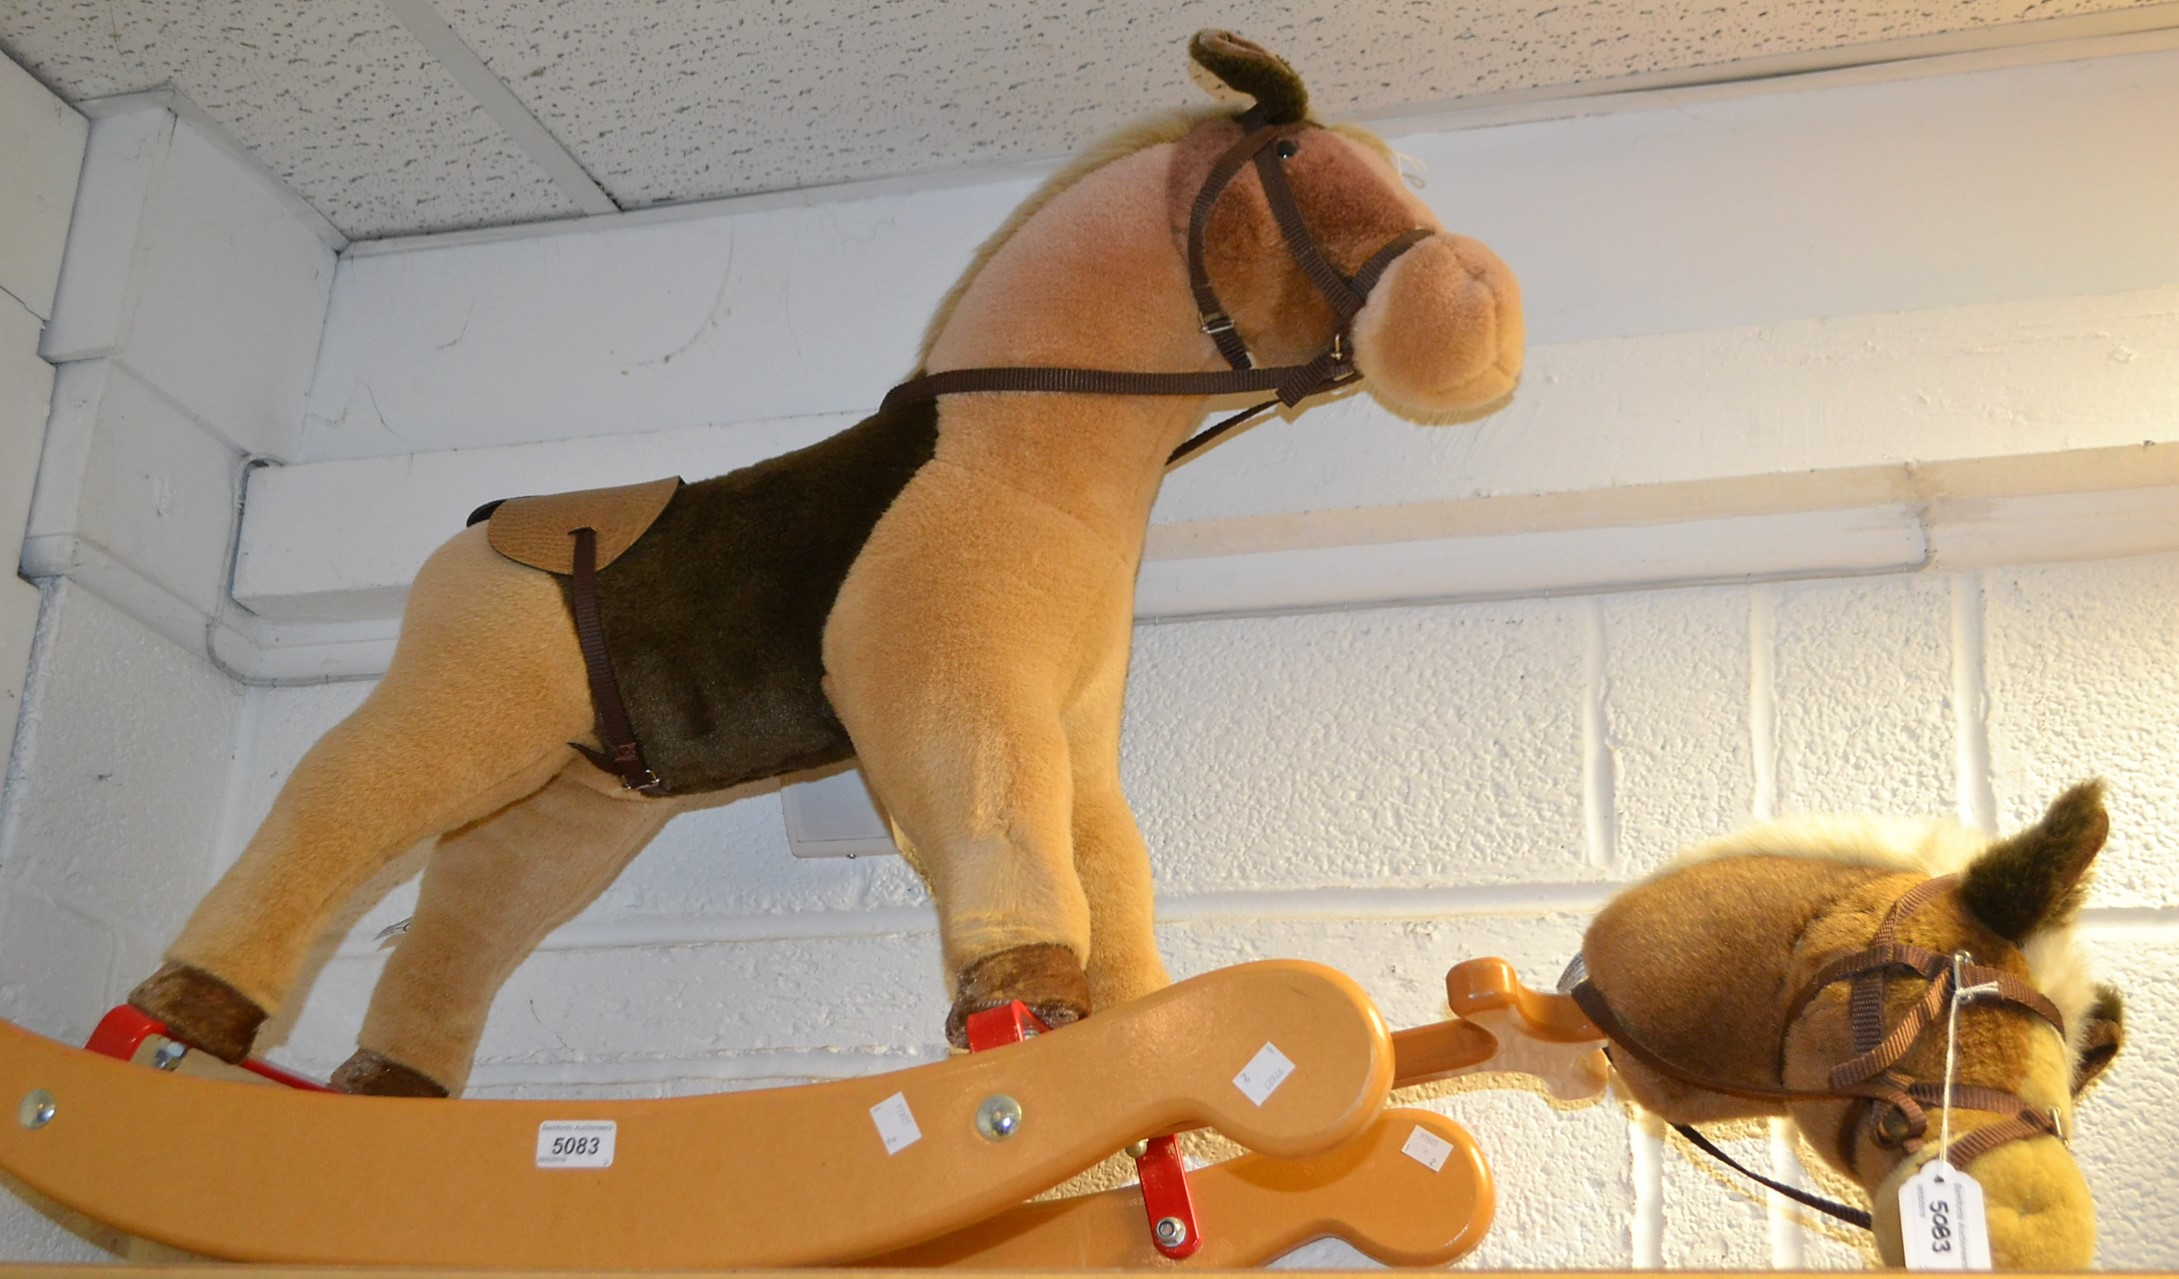 Lot 5083 - A Merrythought rocking horse on wooden rockers,